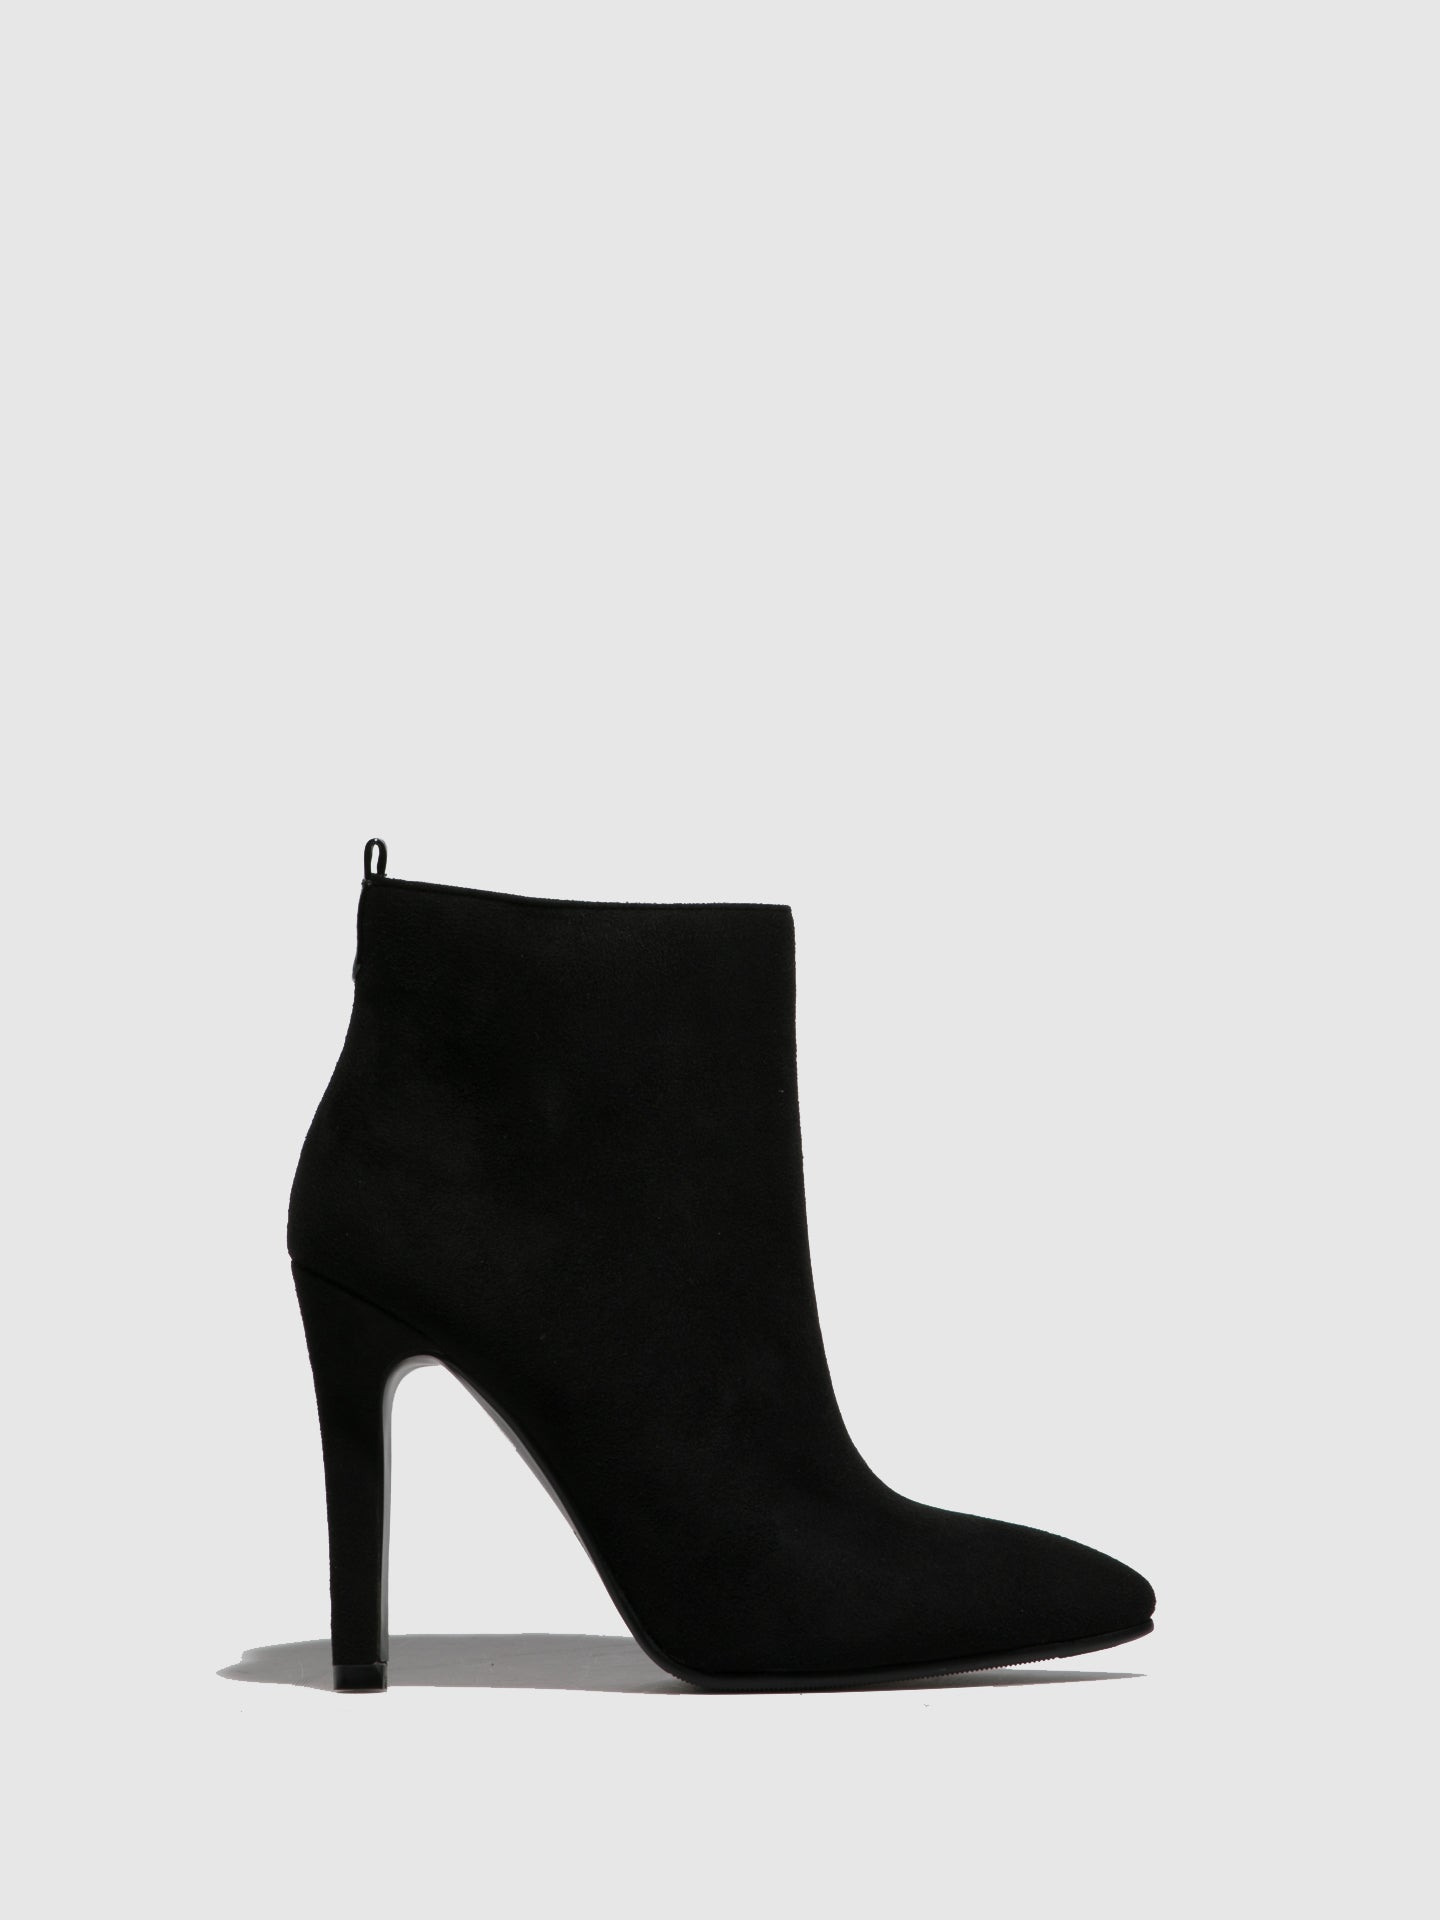 Parodi Sunshine Black Pointed Toe Boots